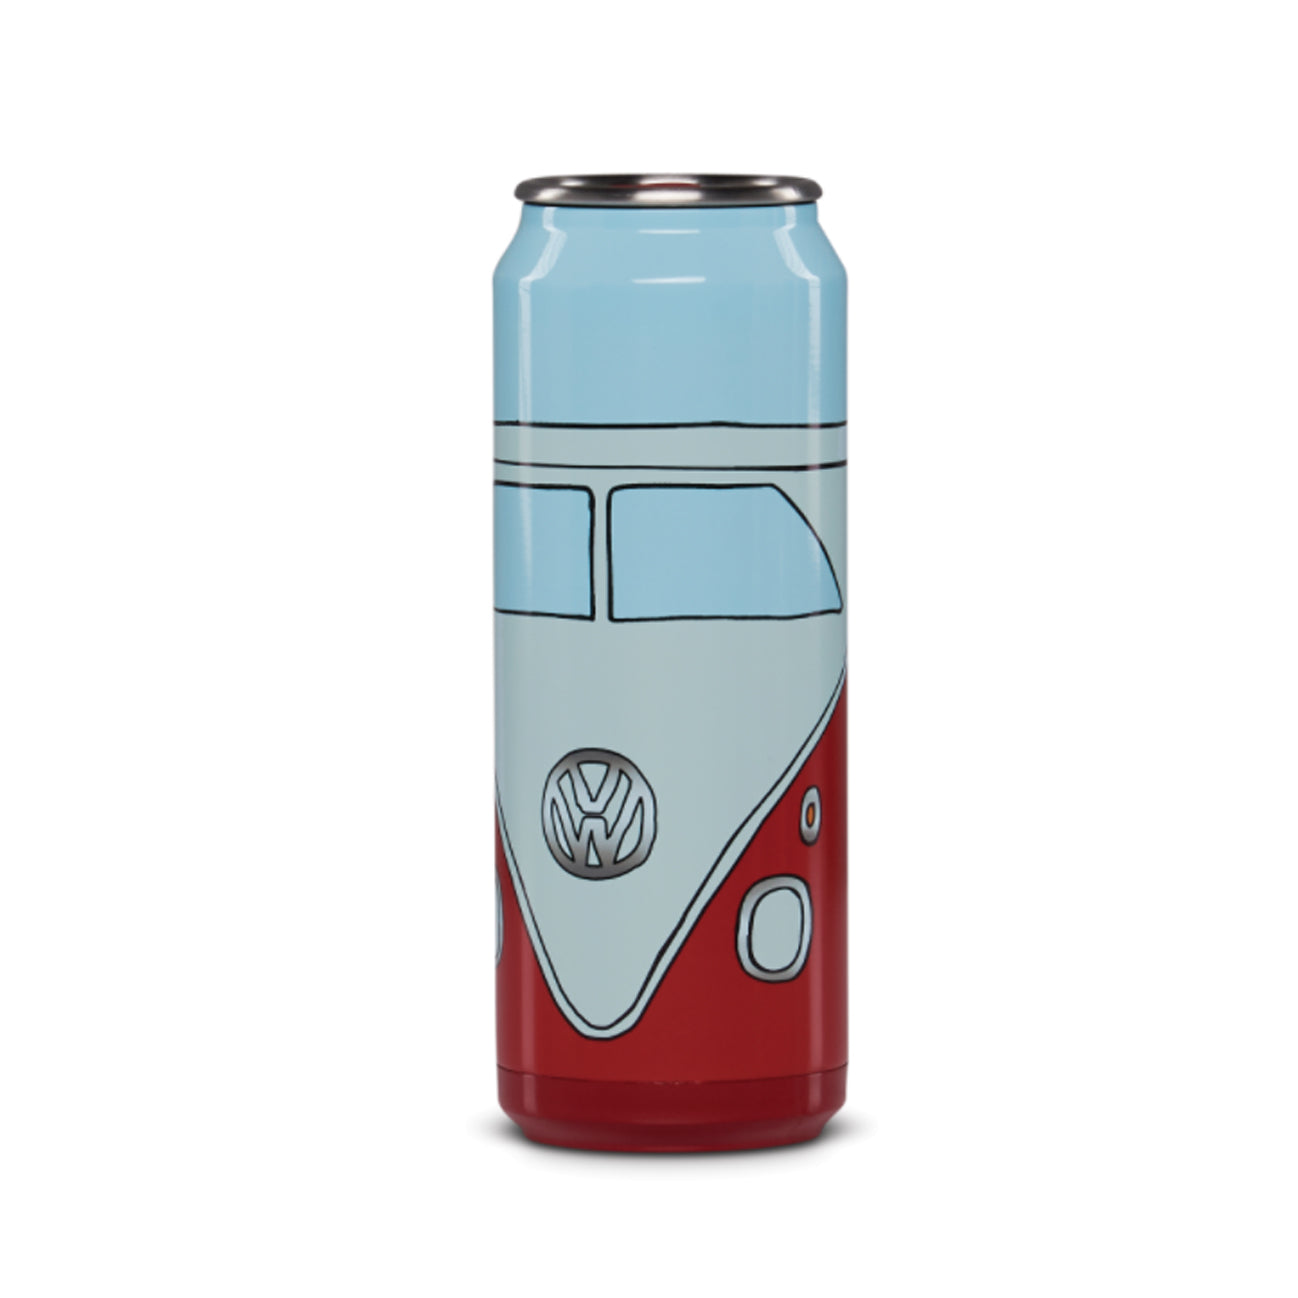 RED VW CAN 16 OZ